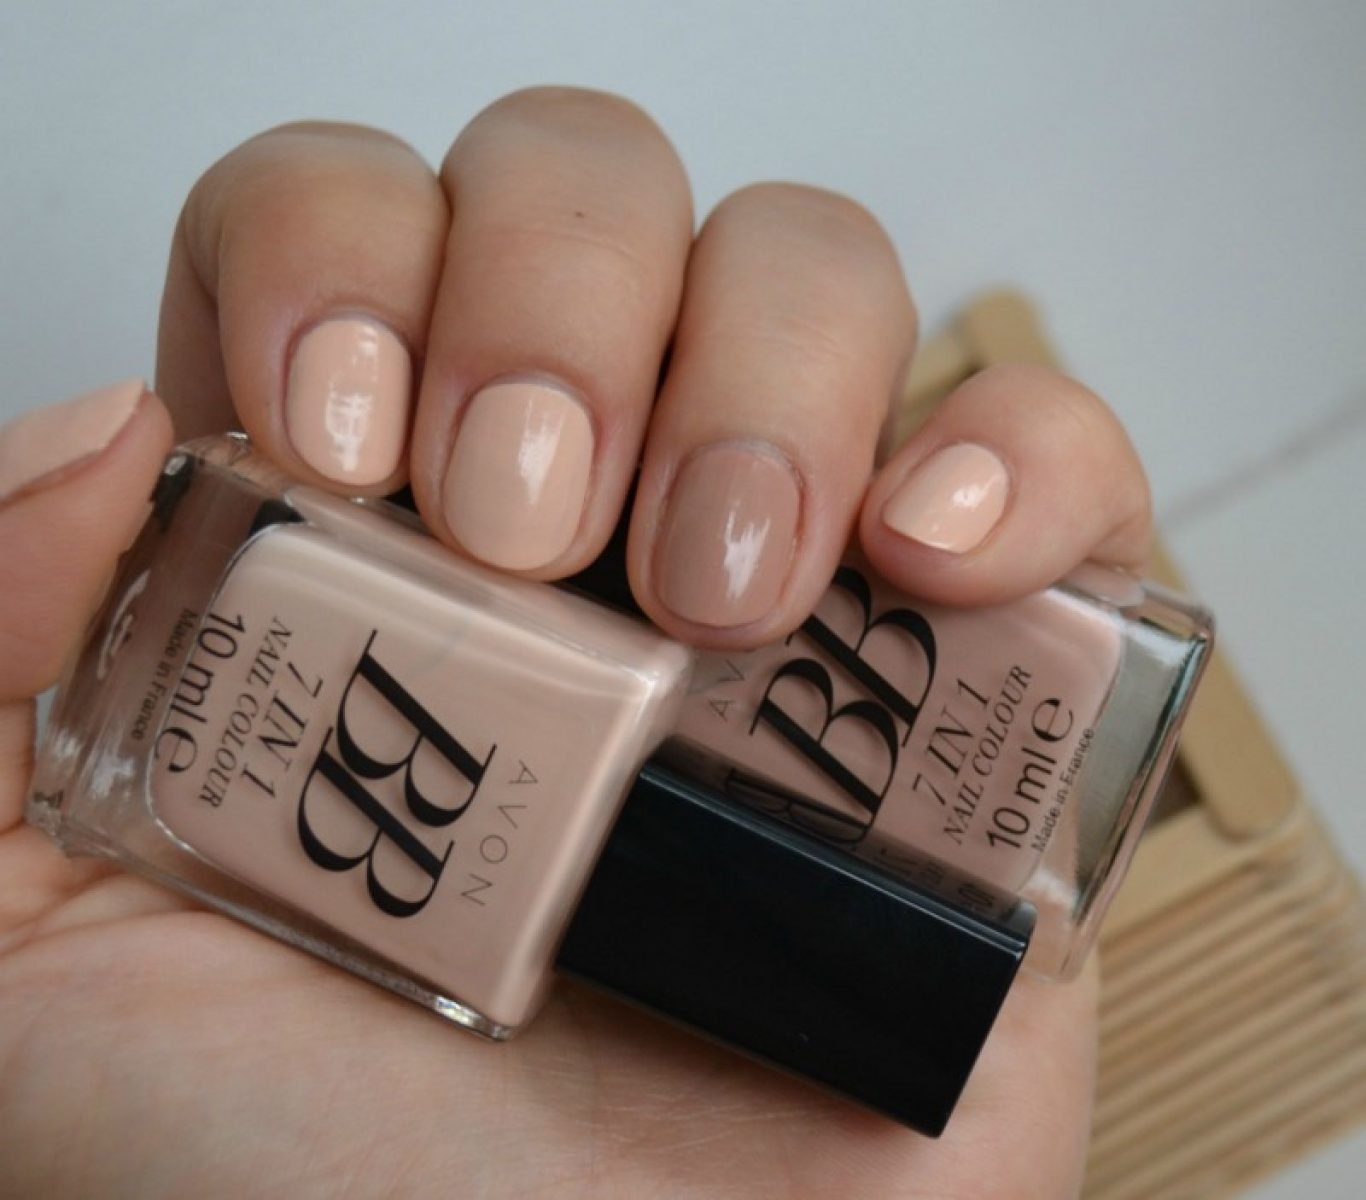 Get perfect nude nails with AVON BB 7-in-1 Nail Colour | Beauty by ...